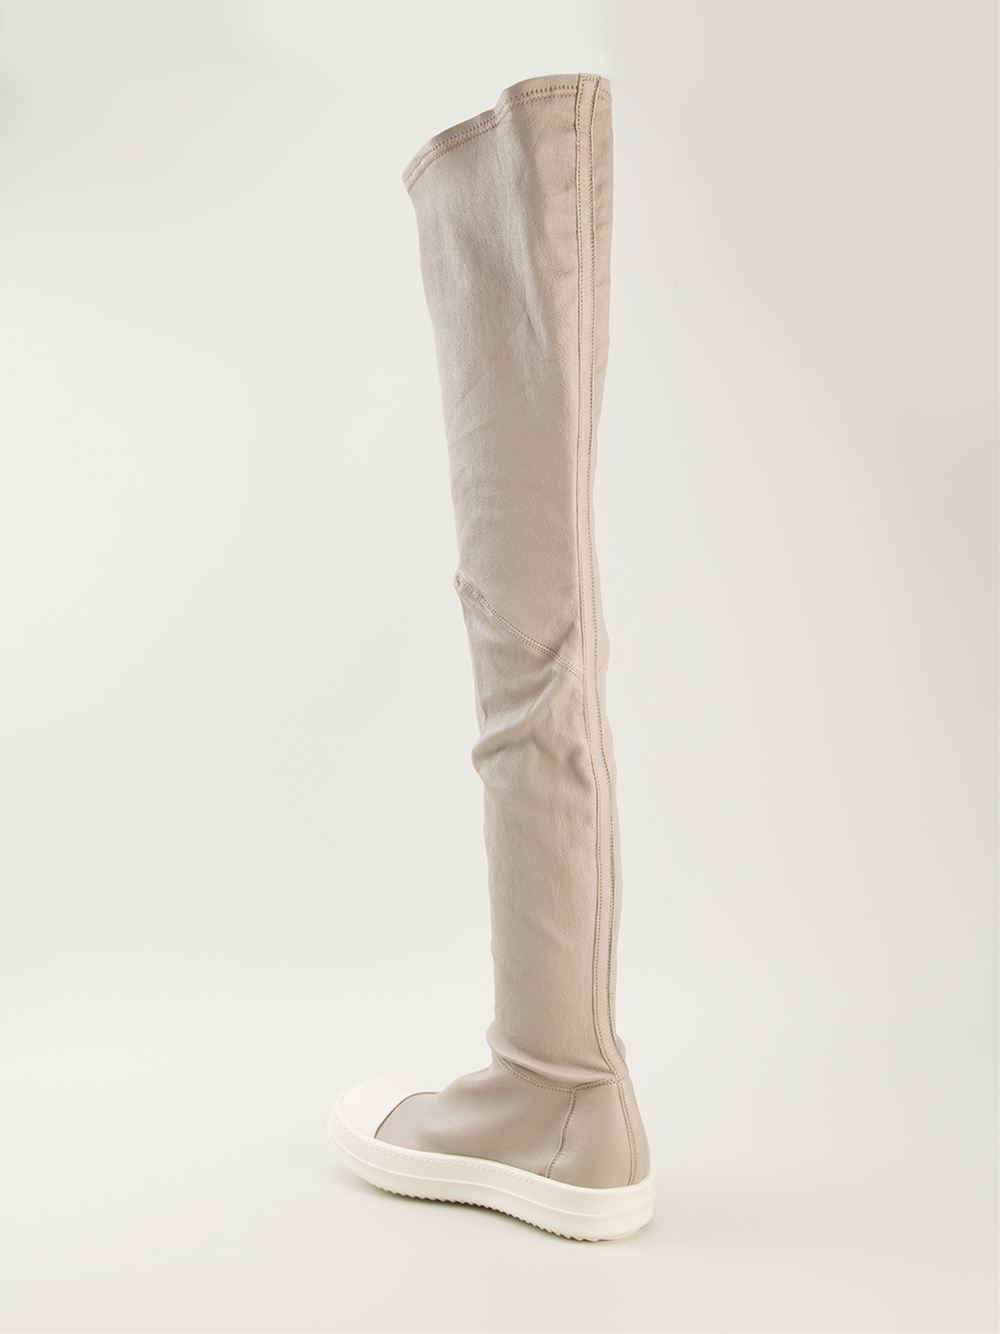 Rick owens 'Ramones' Thigh High Boots in Gray | Lyst